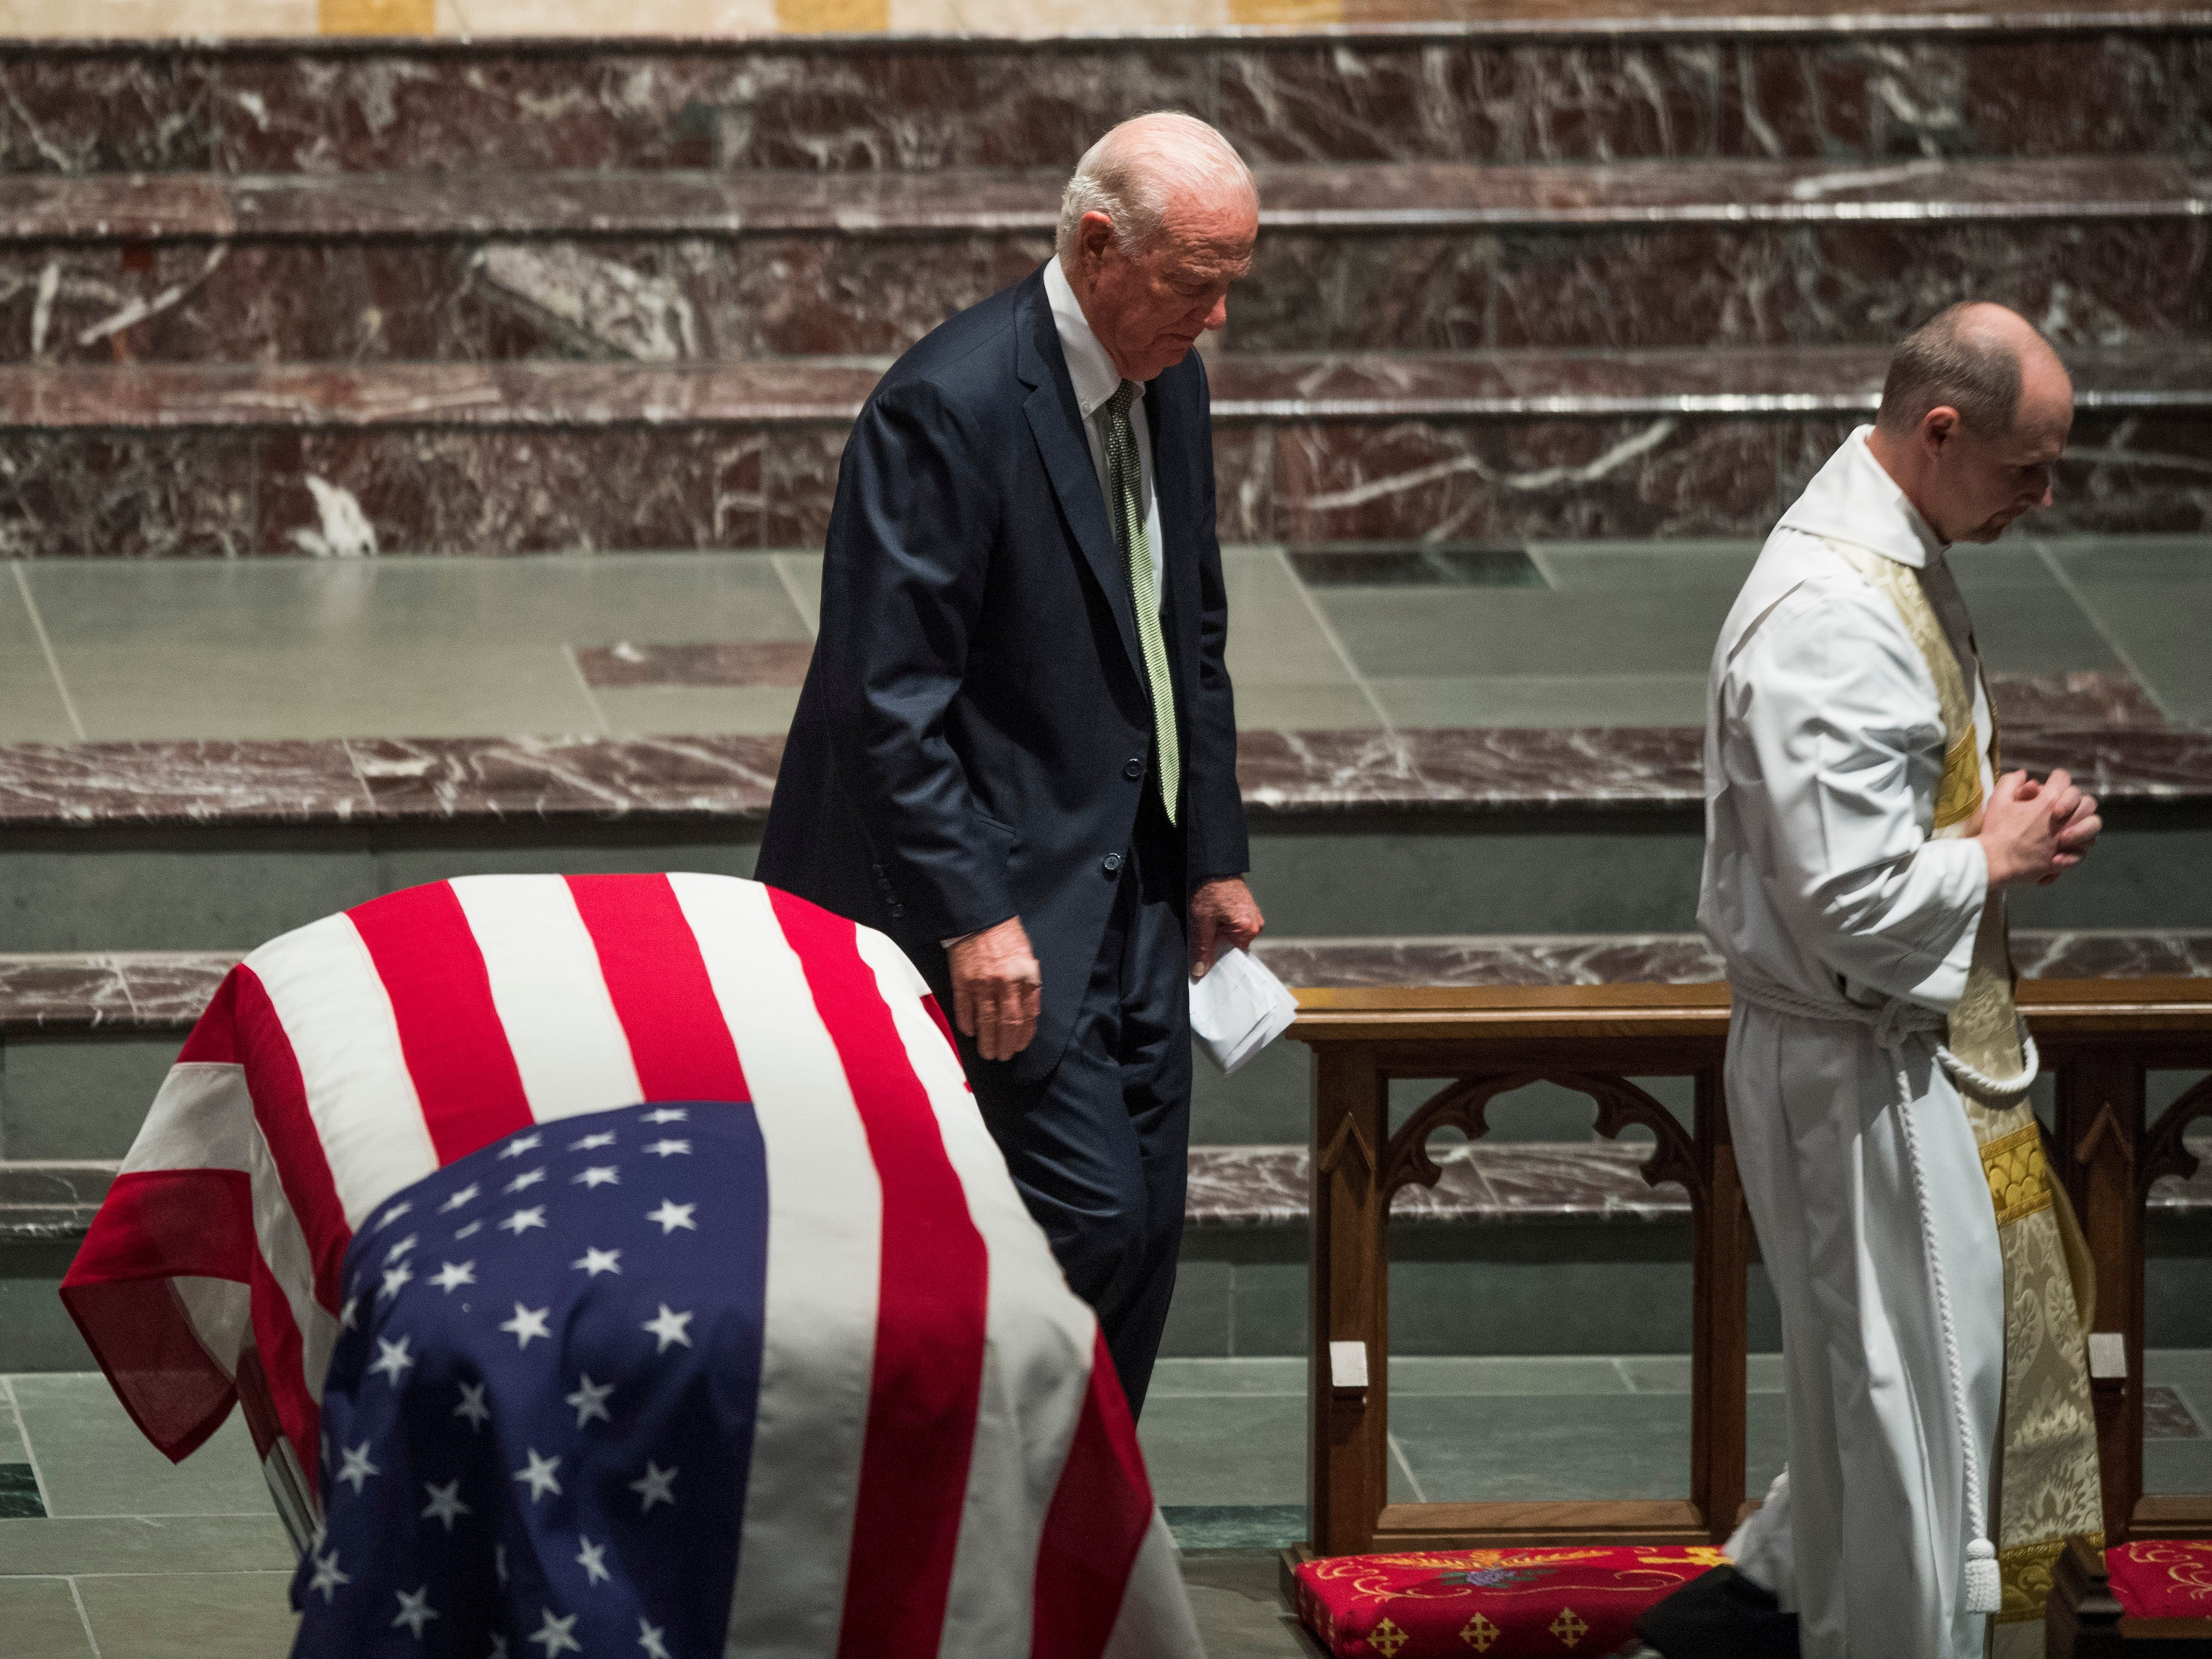 Former White House Chief of Staff James Baker after he gave a eulogy at the funeral service for former President George H.W. Bush at St. Martin's Episcopal Church in Houston on Dec. 6, 2018.